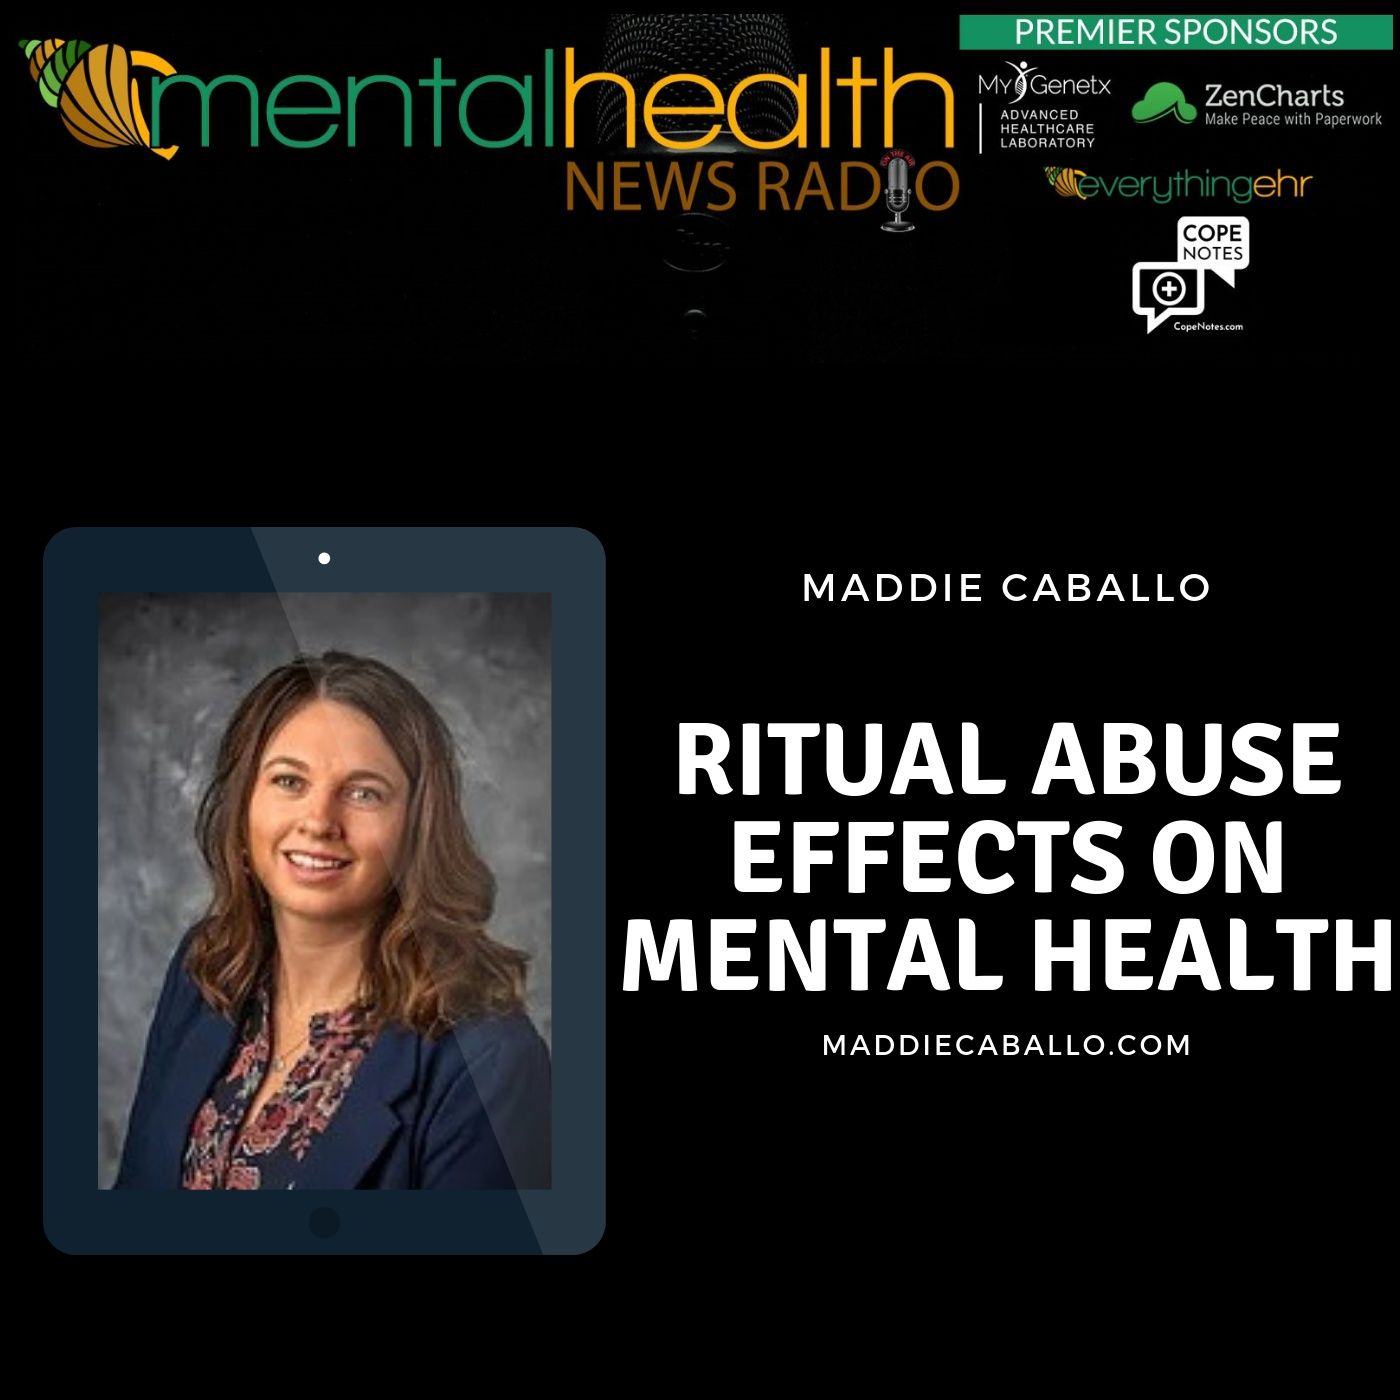 Mental Health News Radio - Ritual Abuse Effects on Mental Health with Maddie Caballo